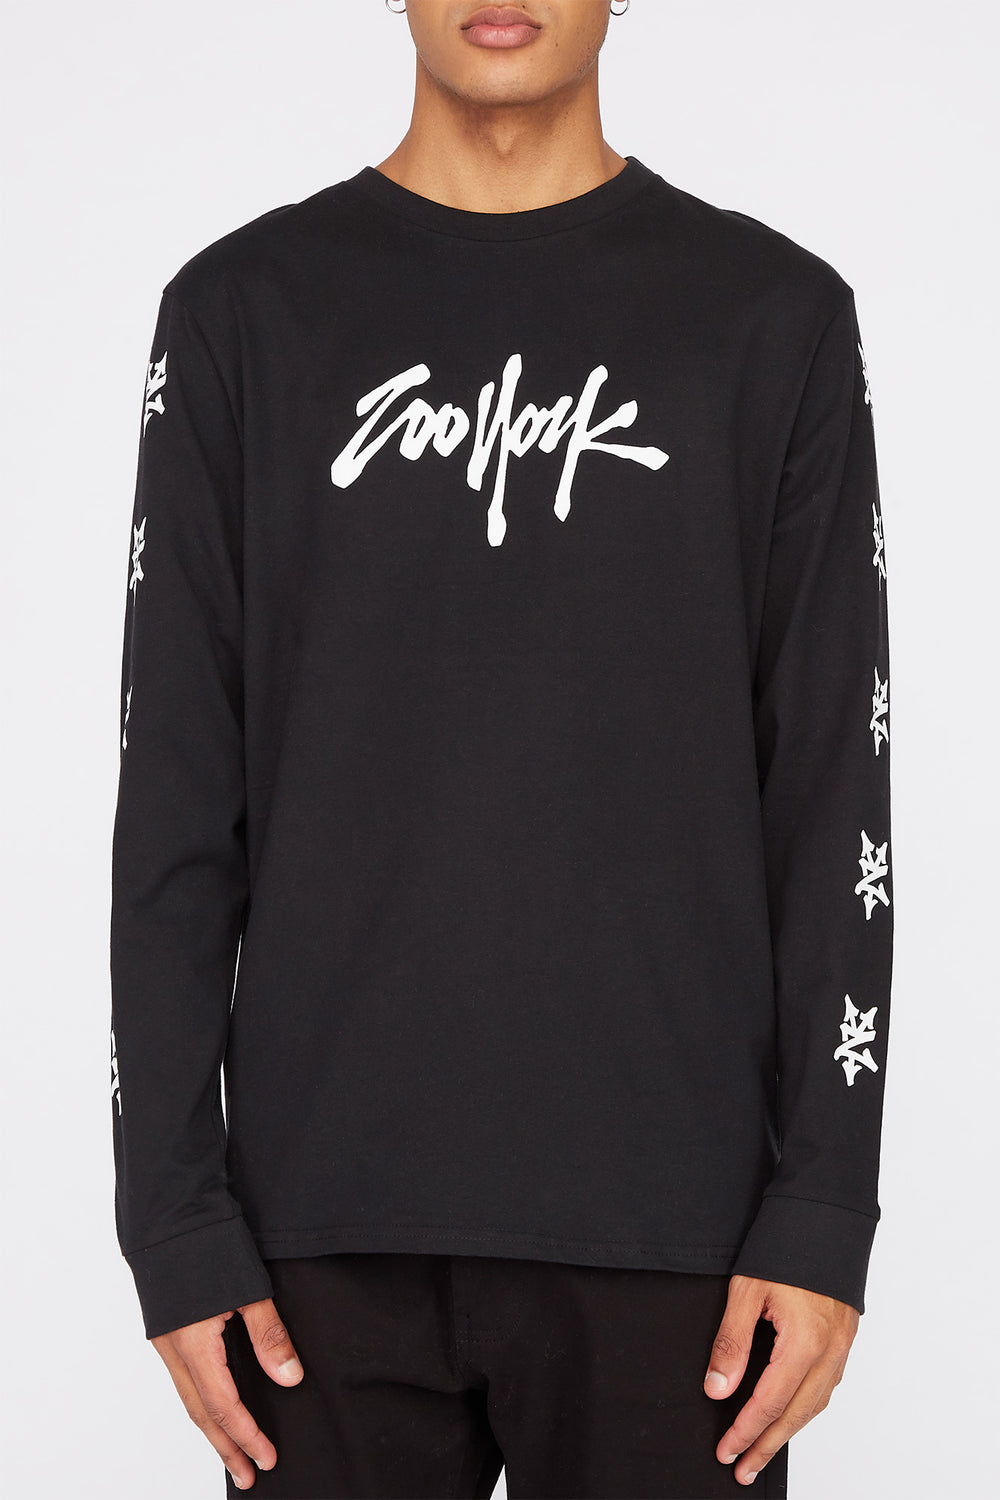 Zoo York Mens NYC Boroughs Long Sleeve Shirt Black